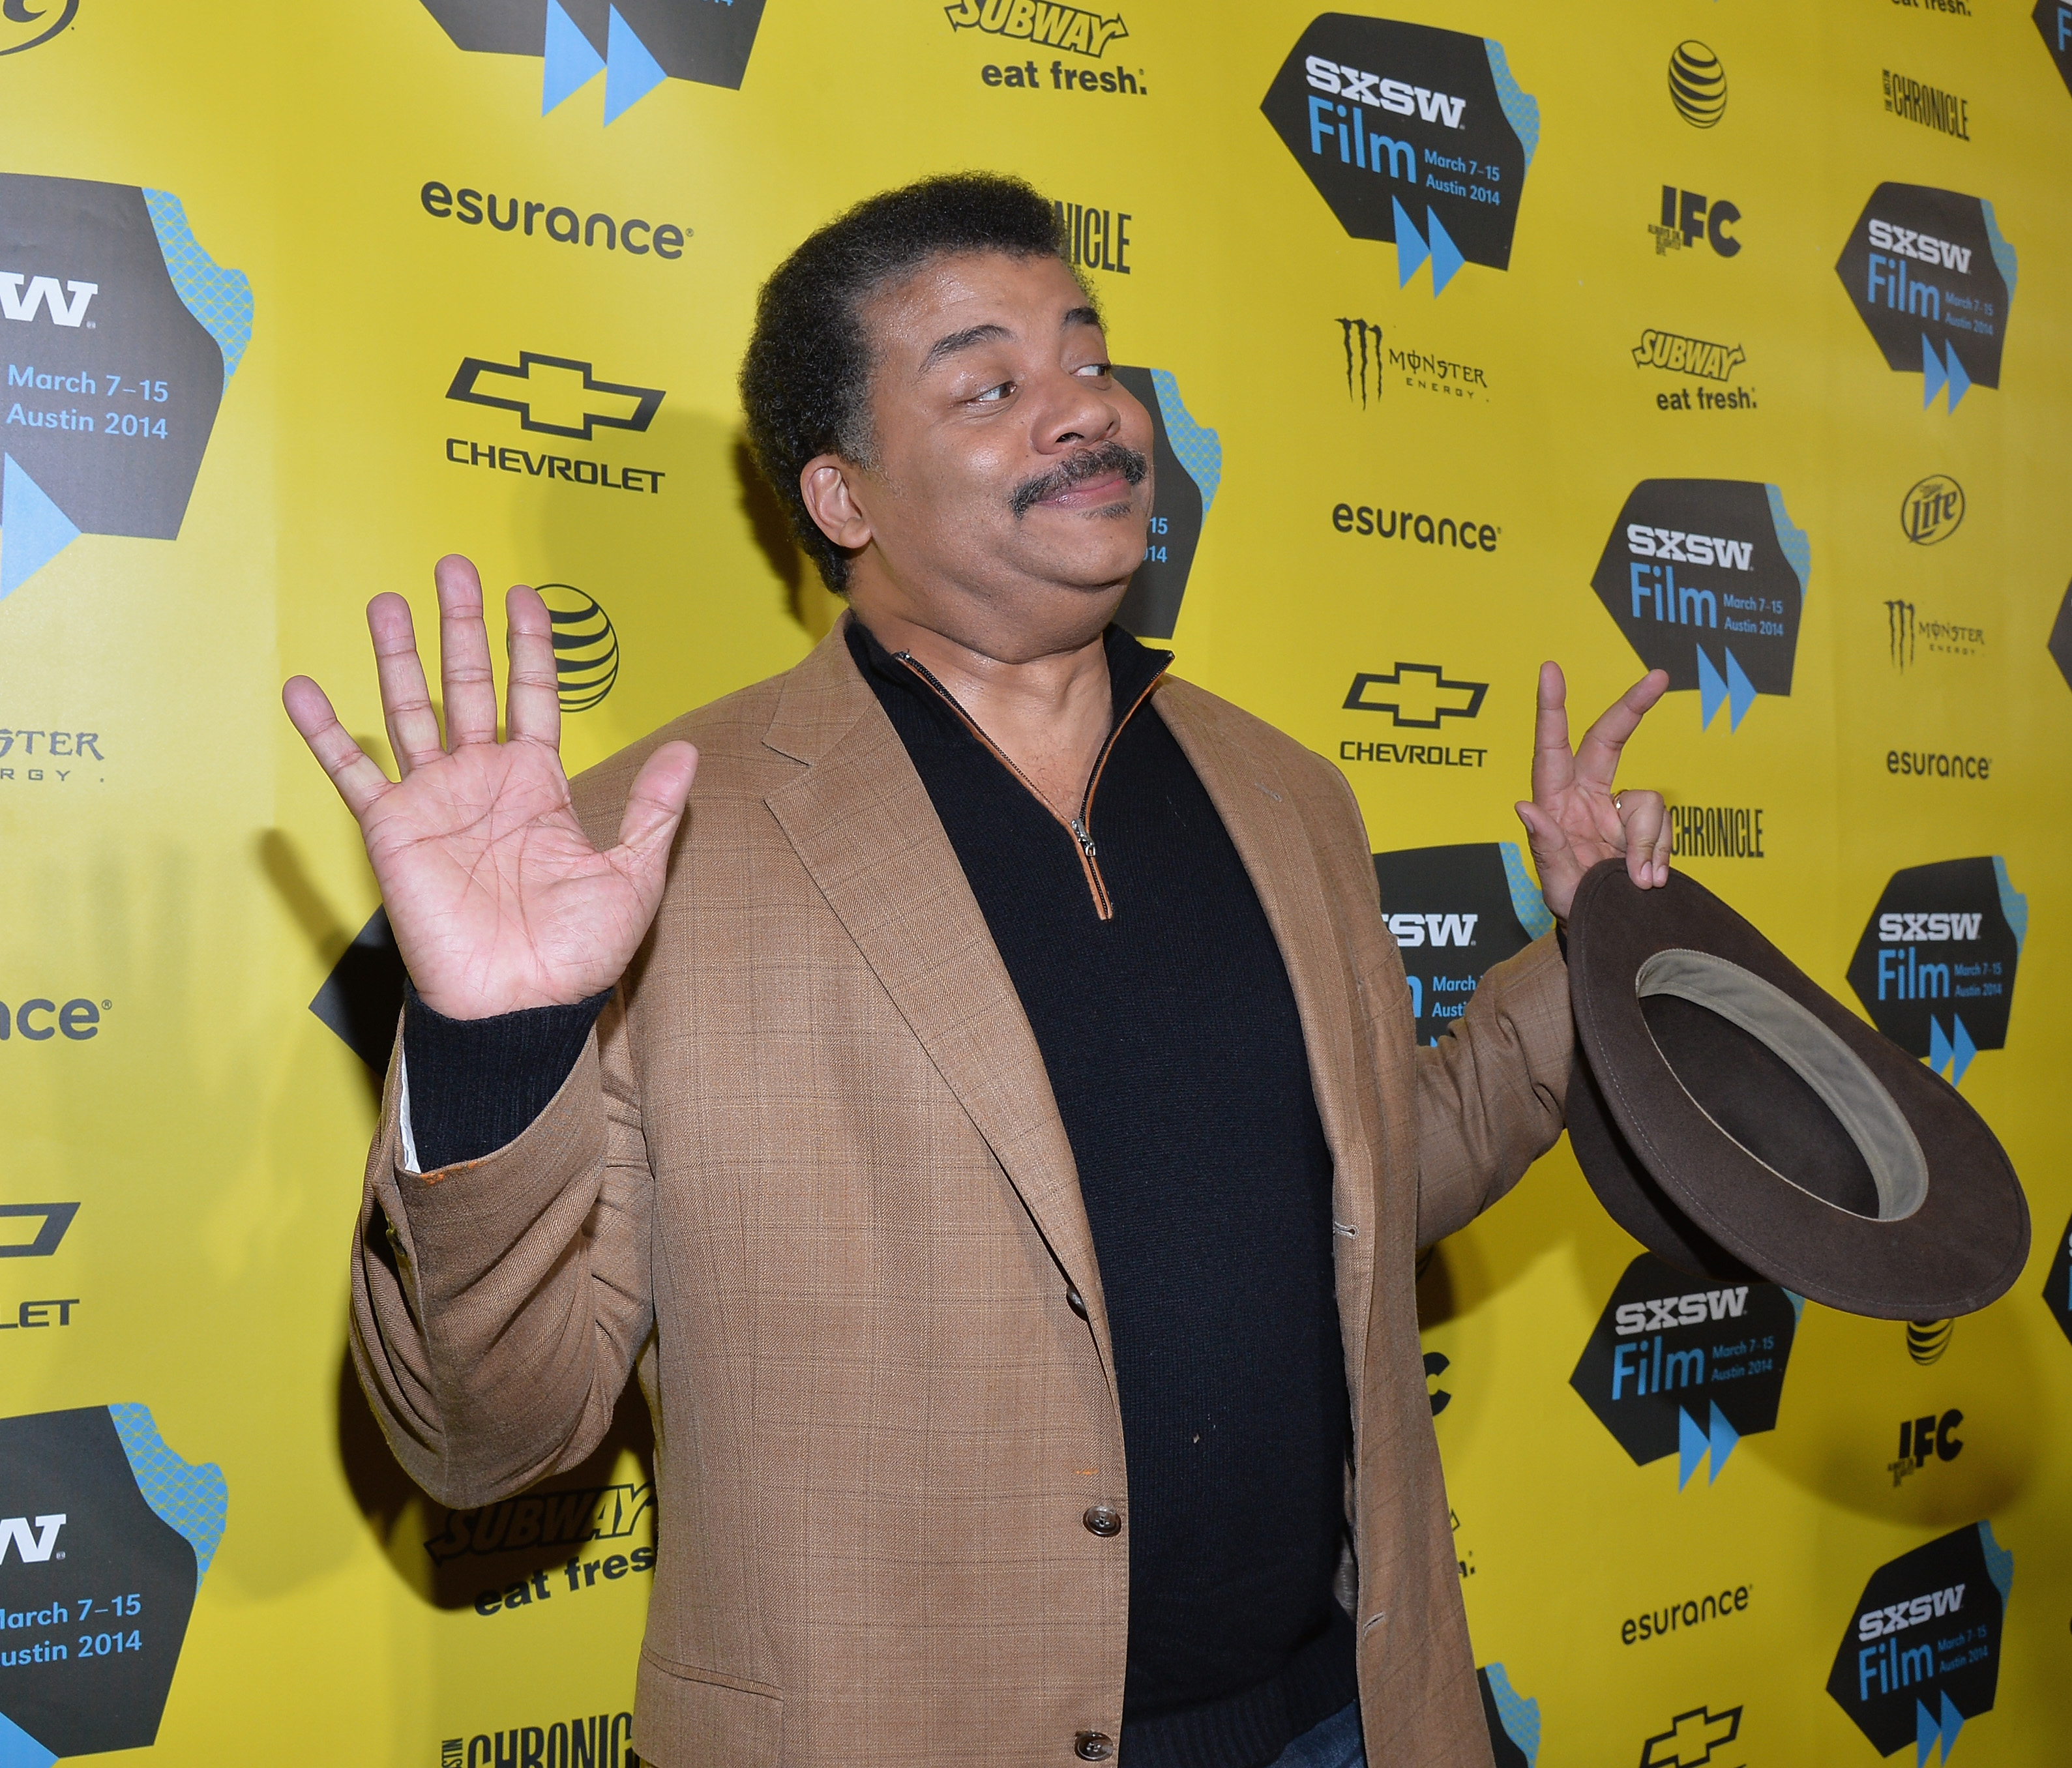 AUSTIN, TX - MARCH 07: Host Neil deGrasse Tyson arrives at the screening of 'Cosmos: A Space Time Odyssey during the 2014 SXSW Music, Film + Interactive at Paramount Theatre on March 7, 2014 in Austin, Texas. (Photo by Michael Buckner/Getty Images for SXSW)